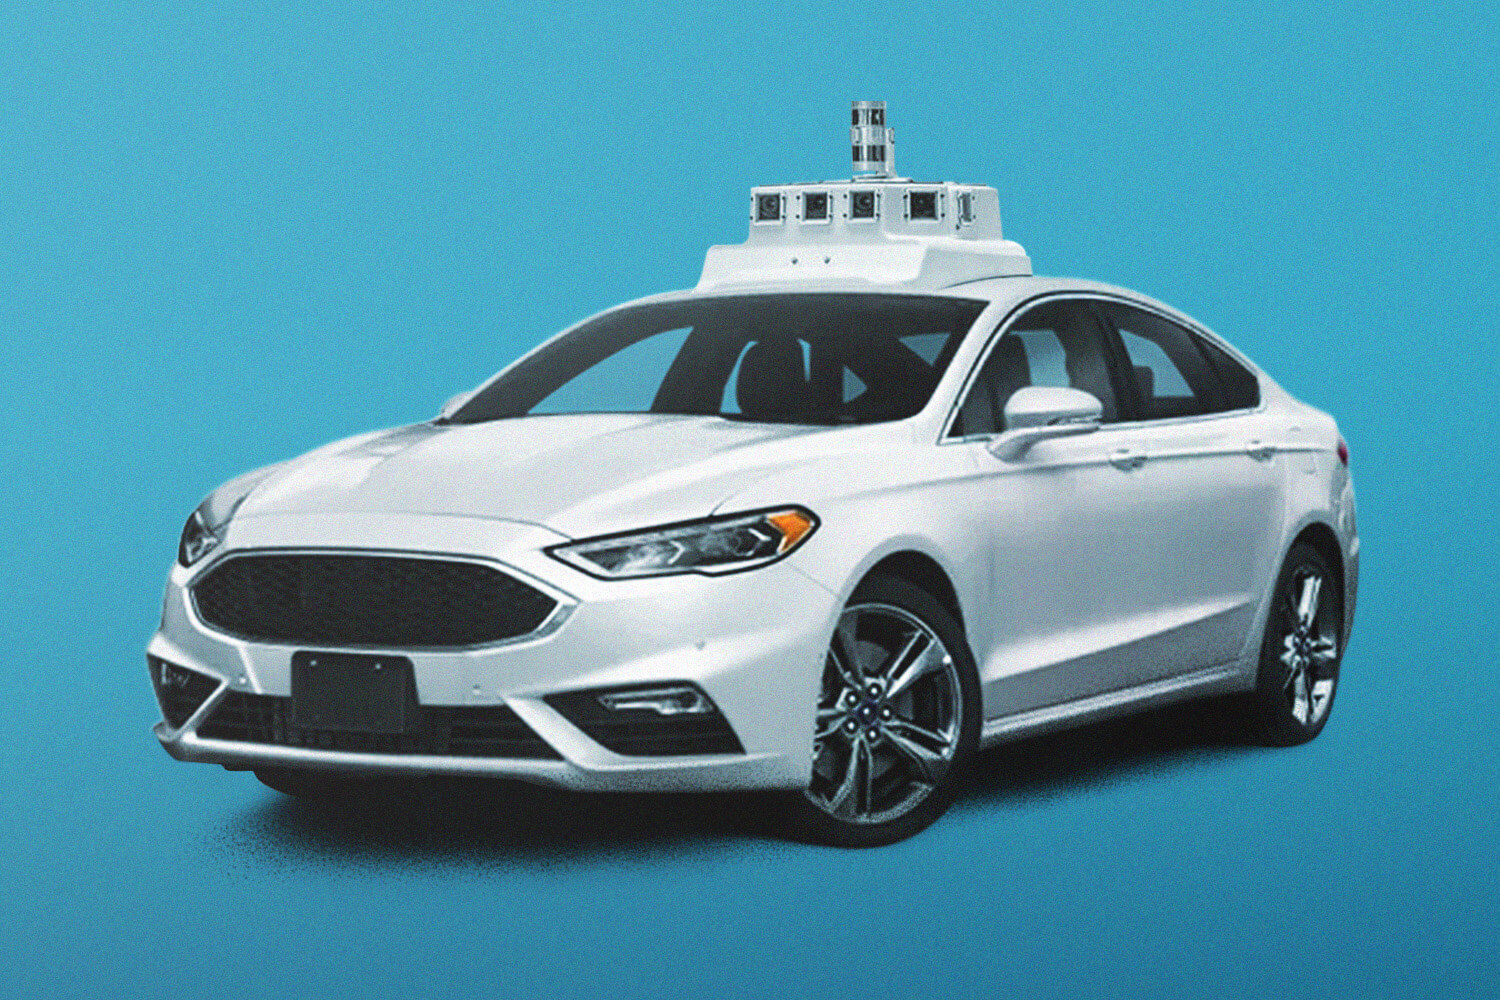 GM and Ford are steadily making self-driving moves